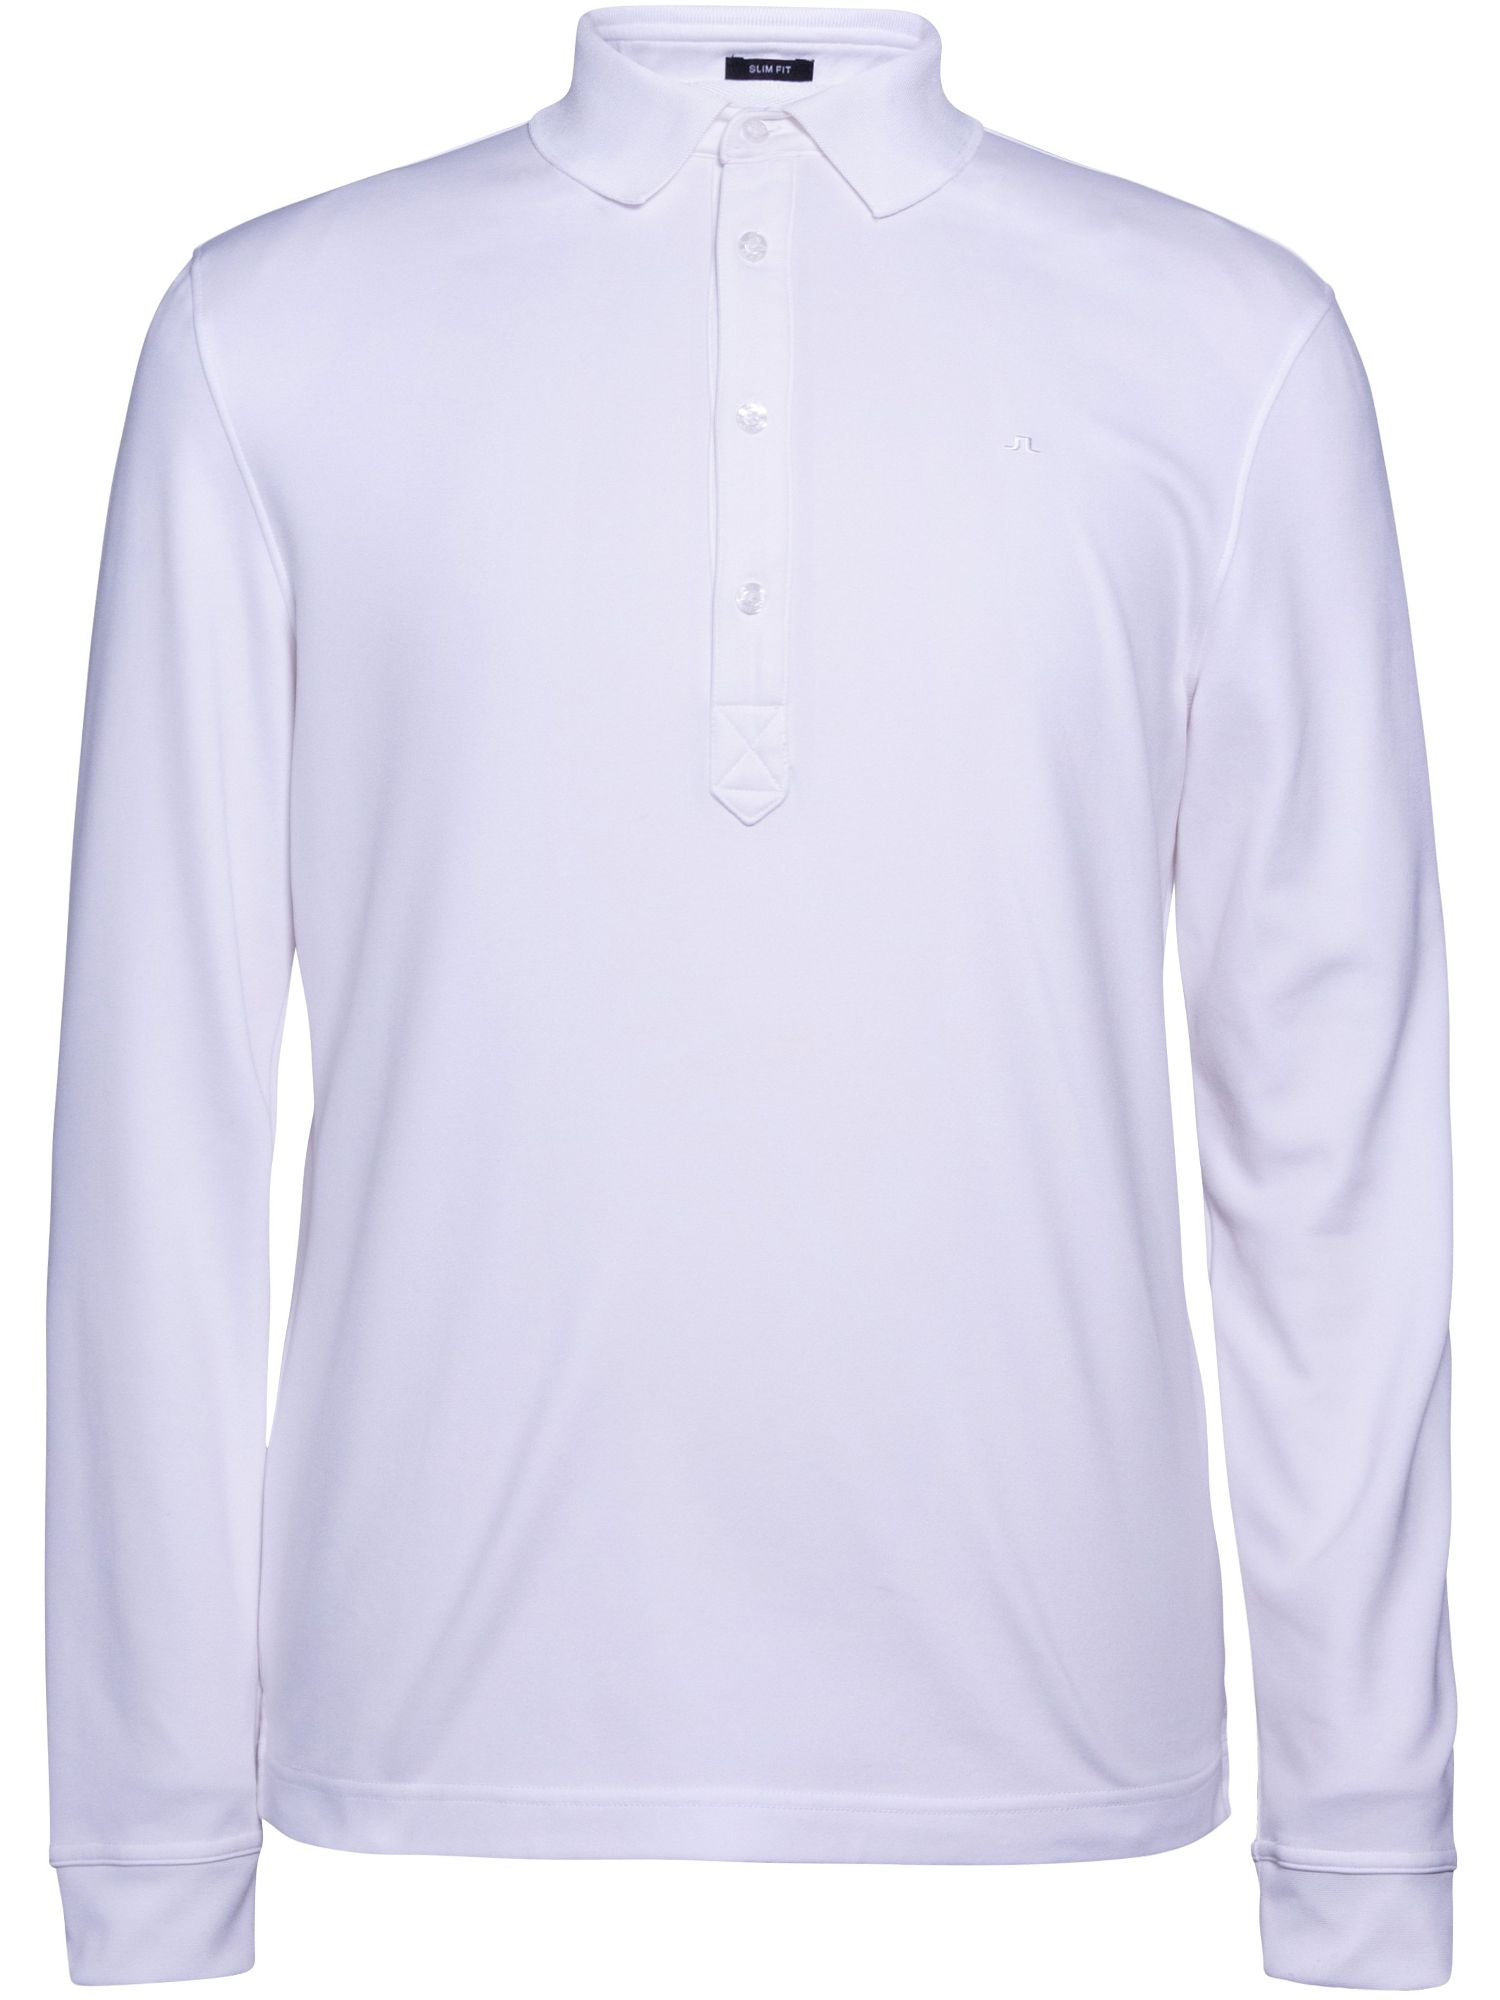 Men's J Lindeberg Olof TX Long Sleeve Polo, White